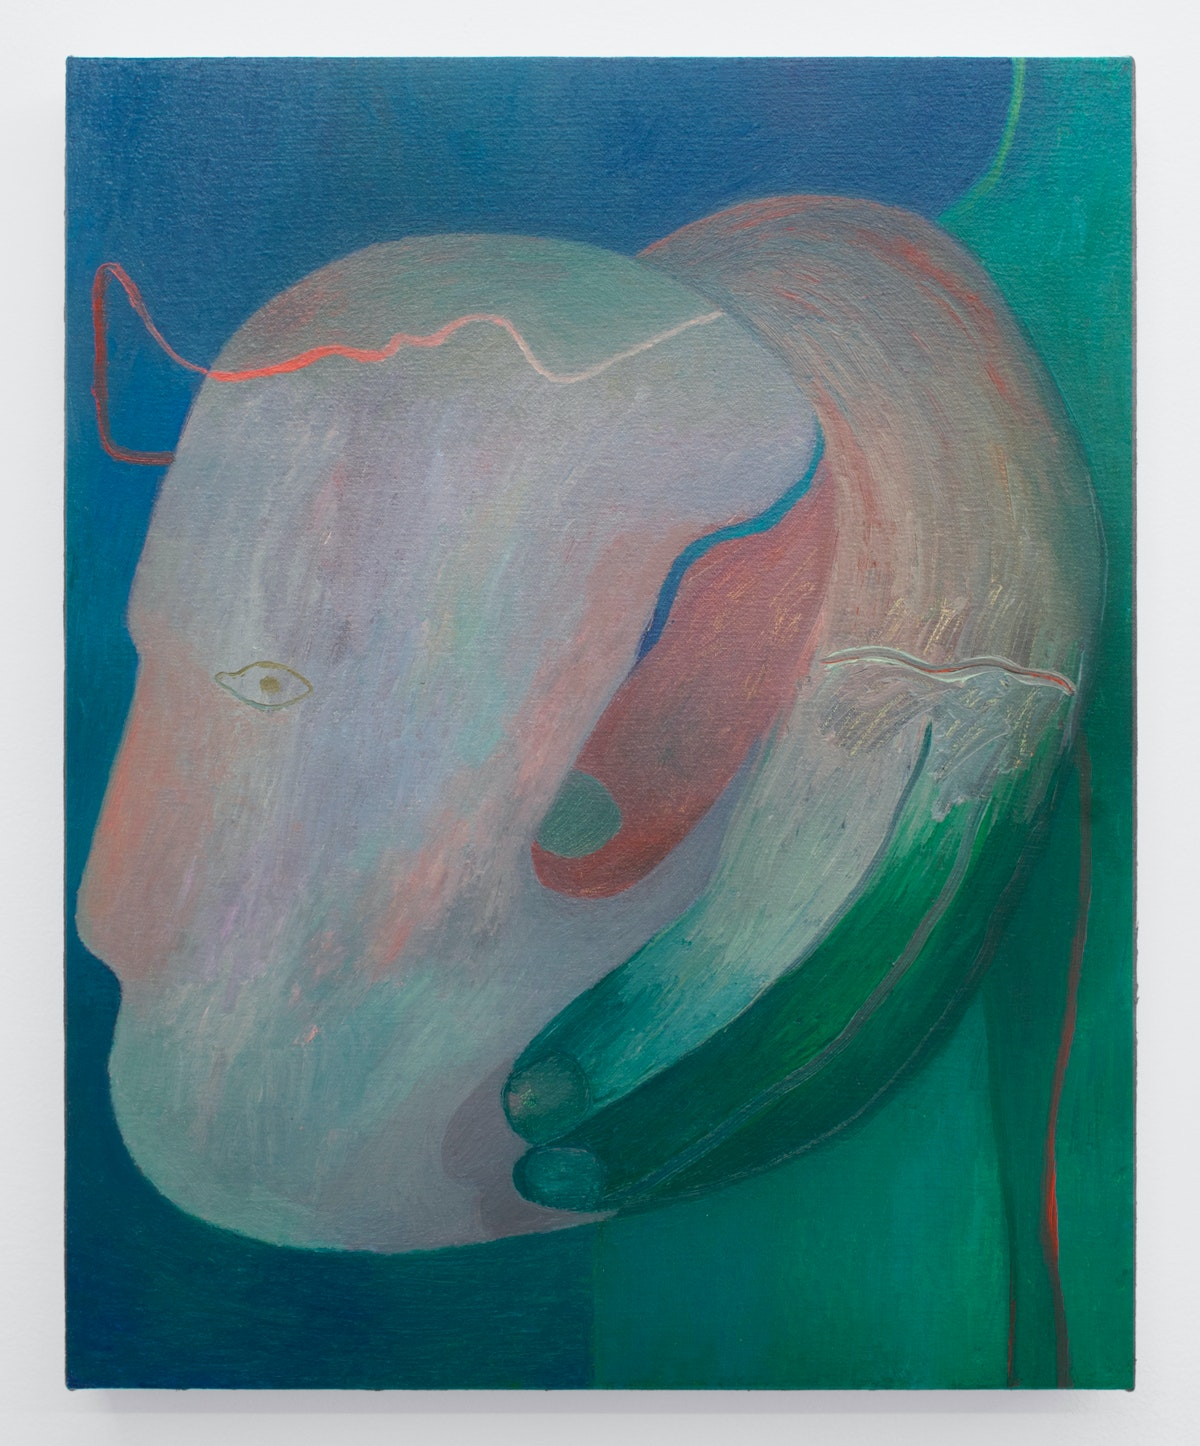 Zoe Avery Nelson, <em>Elegy for Z</em>, 2019. Oil on canvas, 20 x 16 inches. Courtesy Rubber Factory, New York.